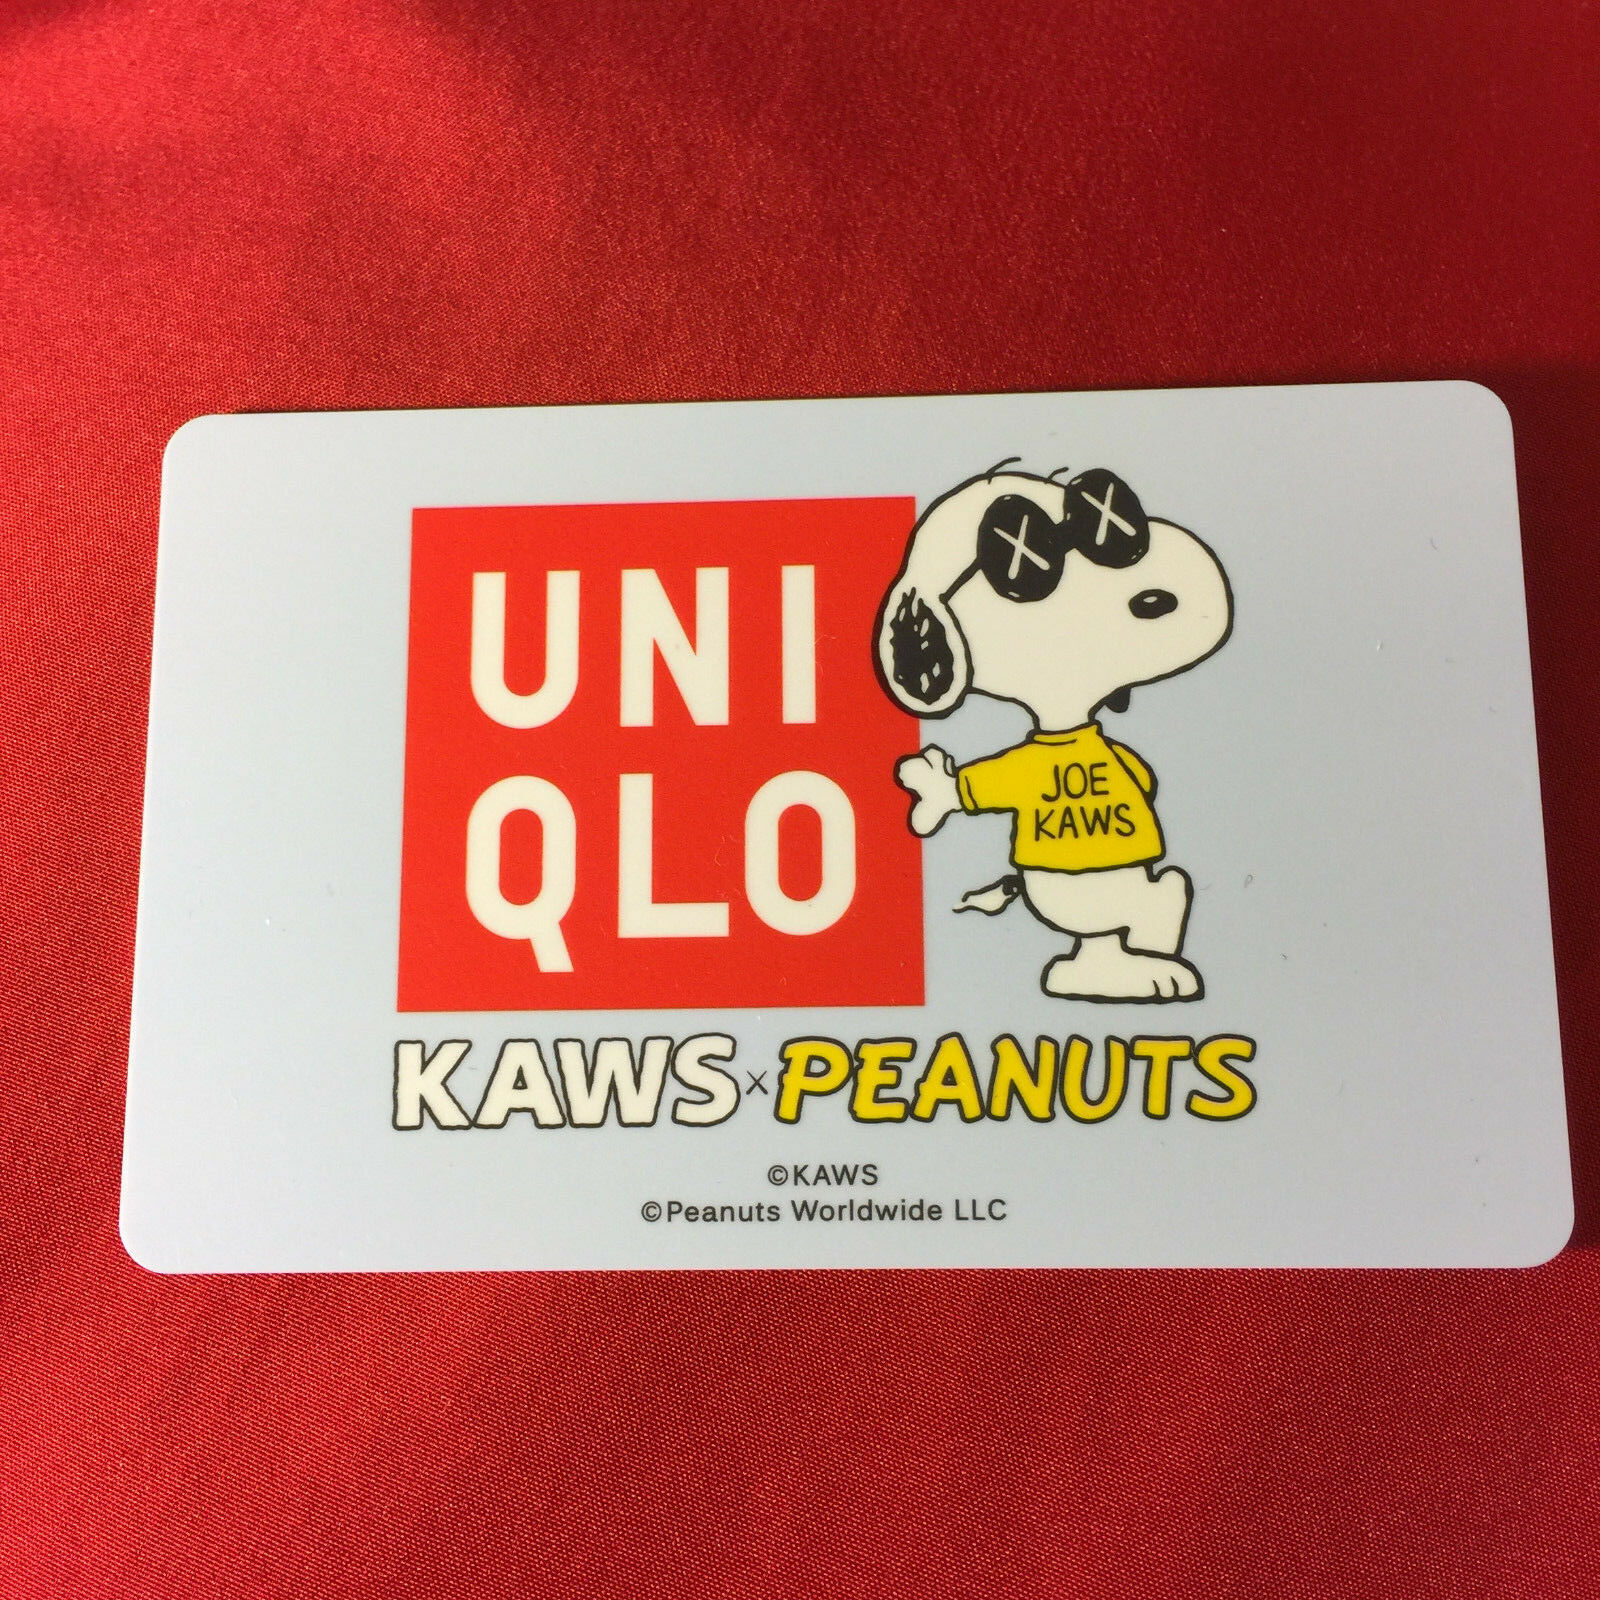 NWT  HOT SALE 2 PC 2017 KAWS X PEANUTS PEANUTS PEANUTS SNOOPY PLUSH SMALL LARGE +UNIQLO CARD SET b43e33